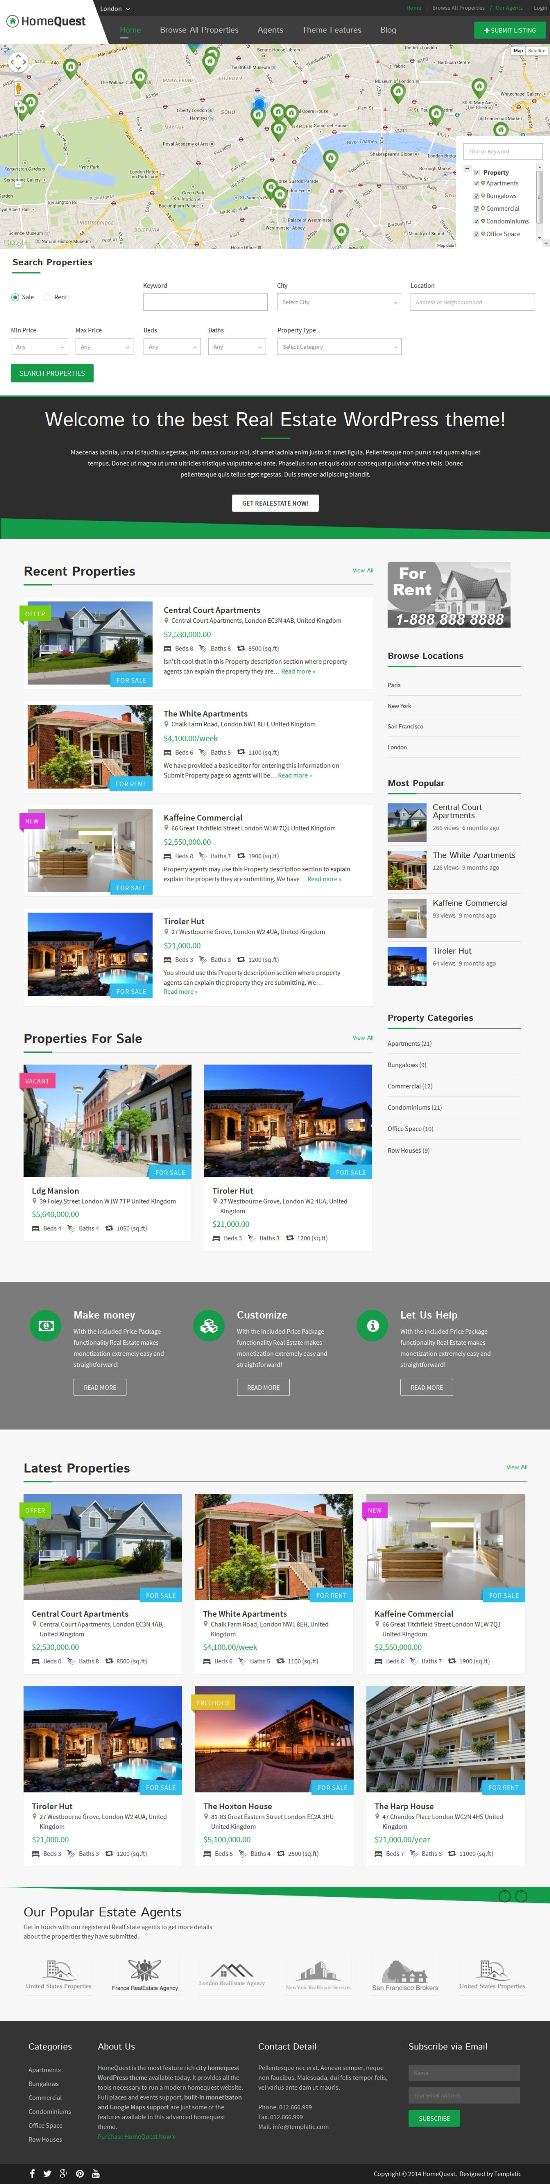 homequest template real estate directory theme 01 - homequest-template-real-estate-directory-theme-01